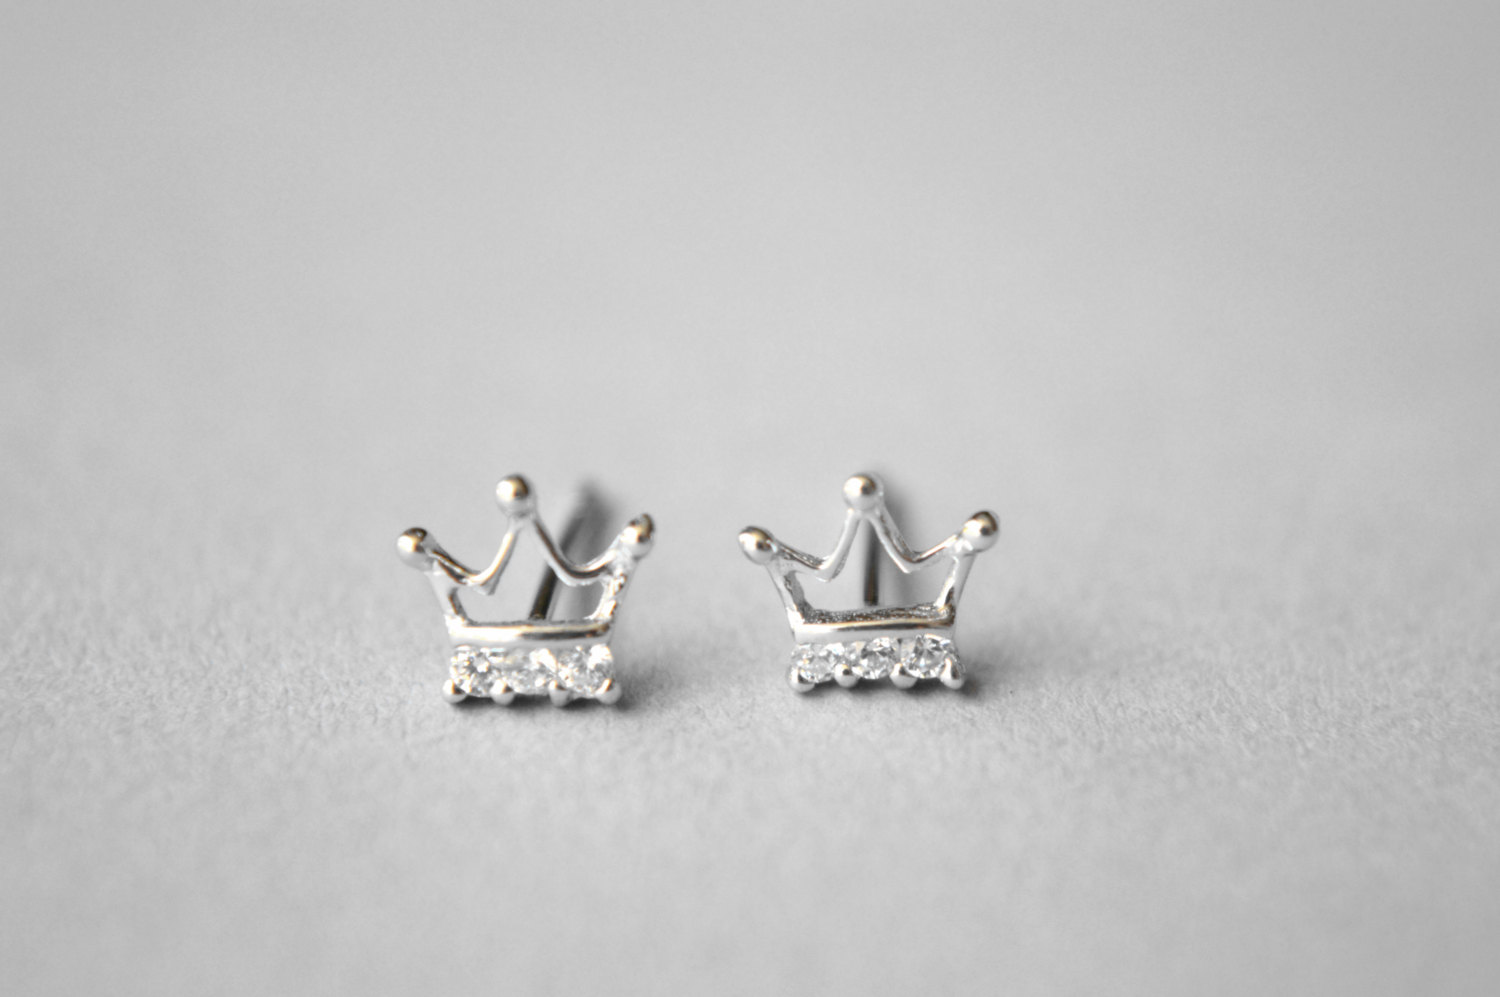 silver stud crowns rose or dear crown products gold earrings reverie